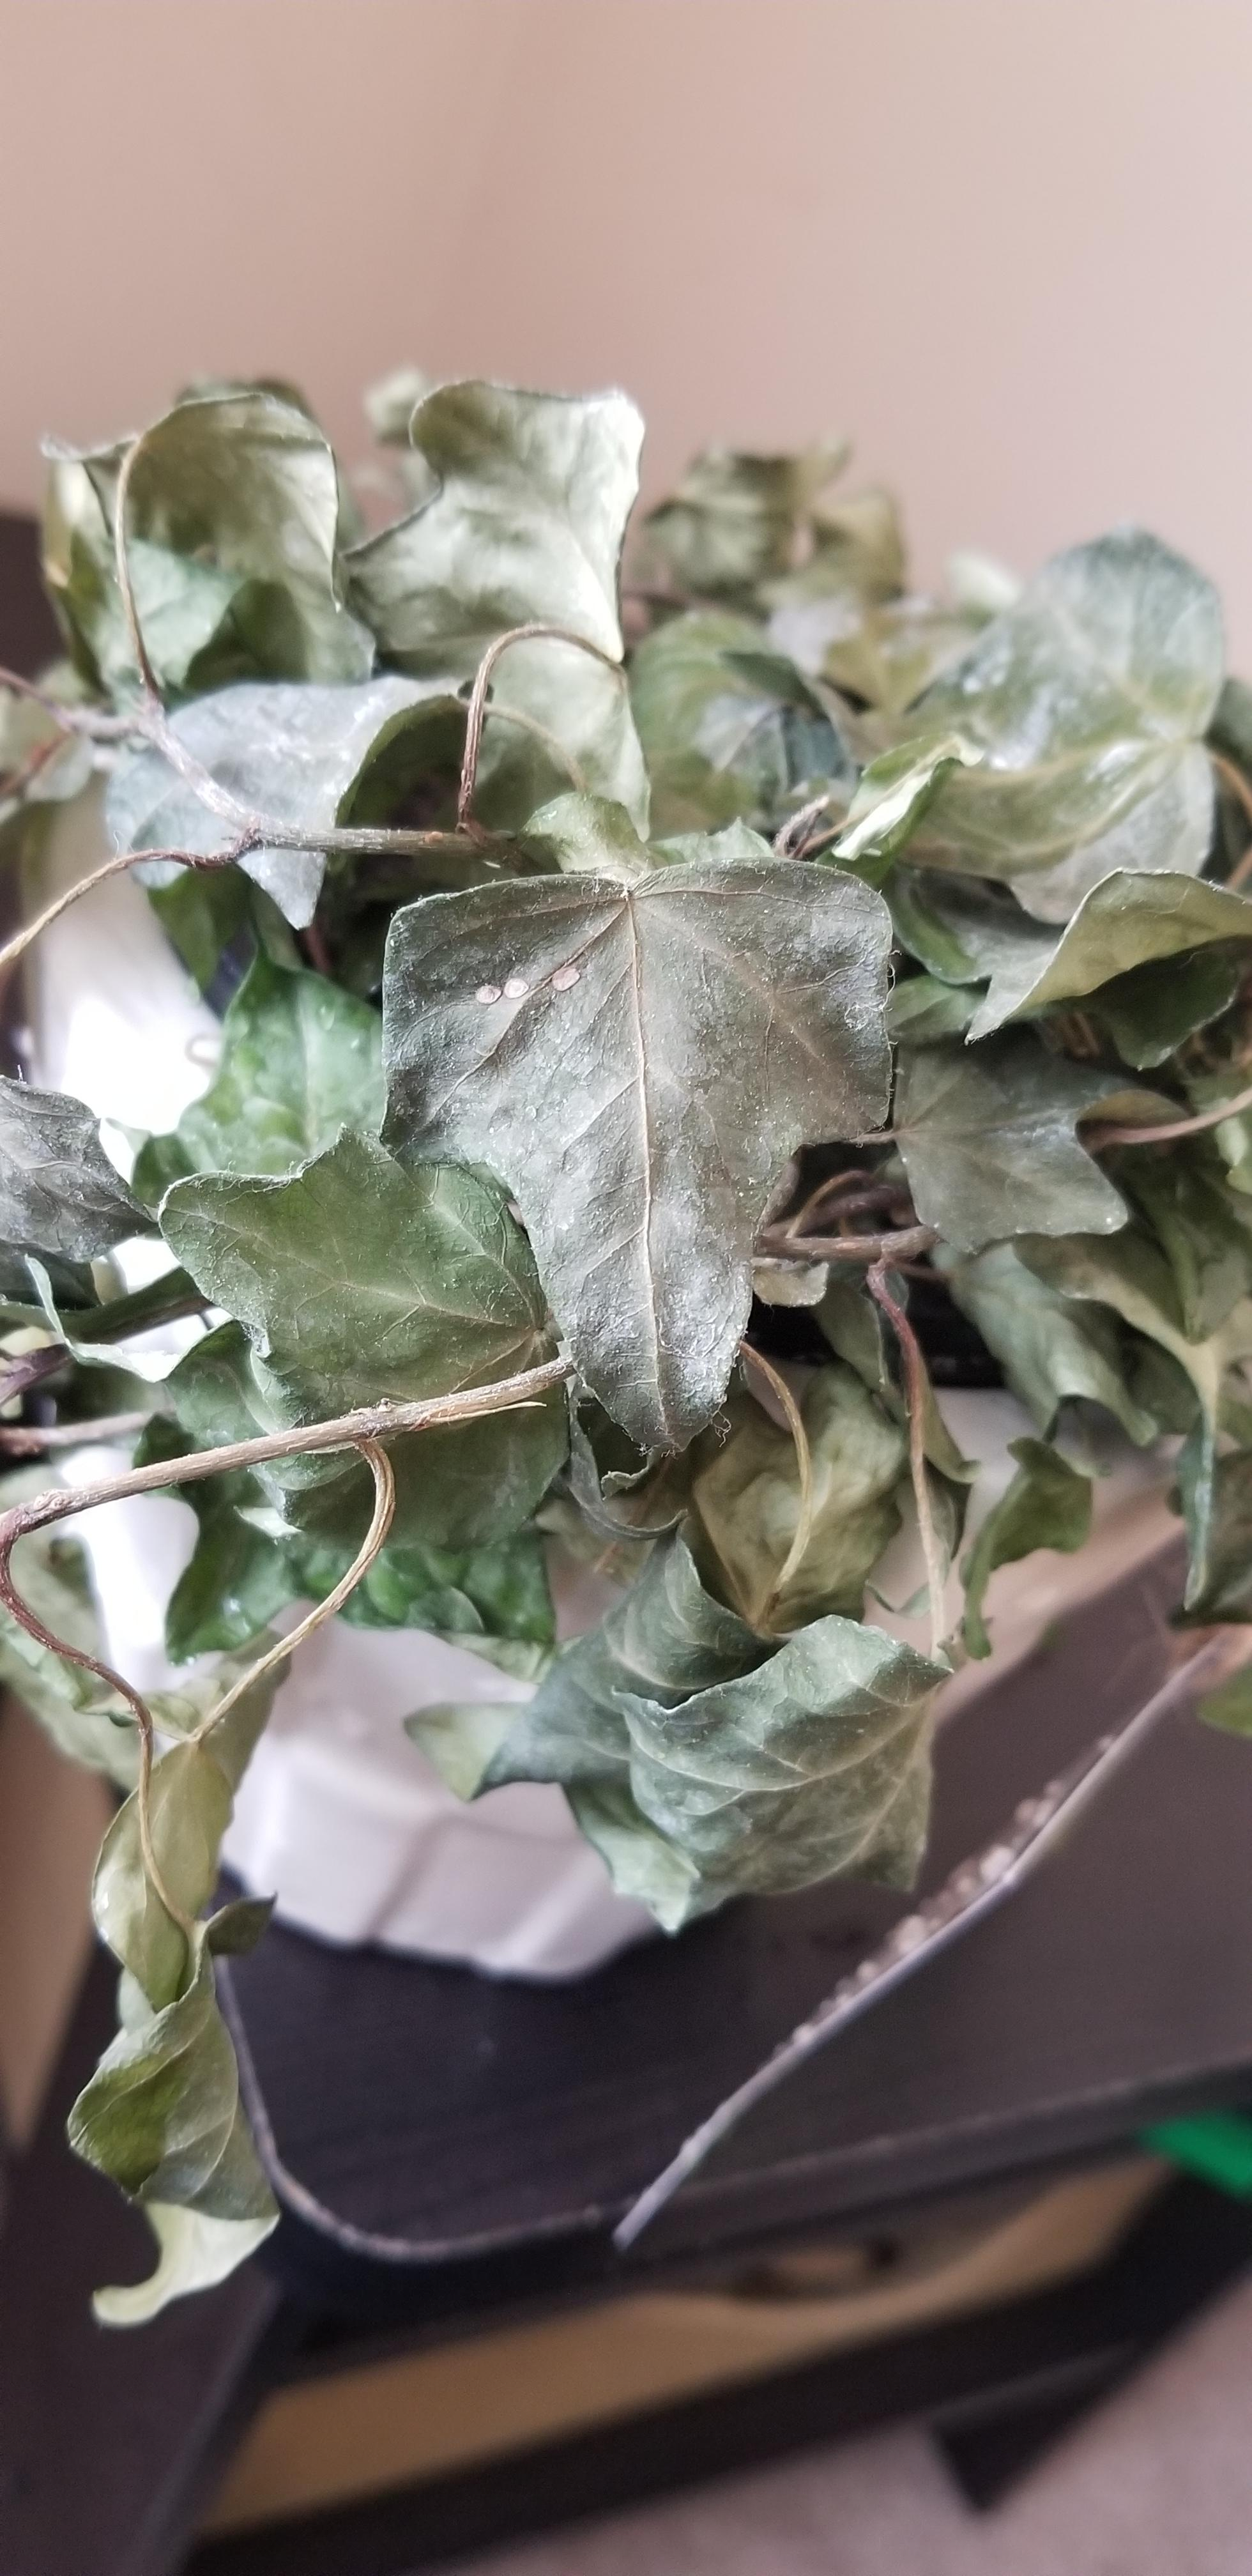 Ivy leaves drying out but not falling off - help ...